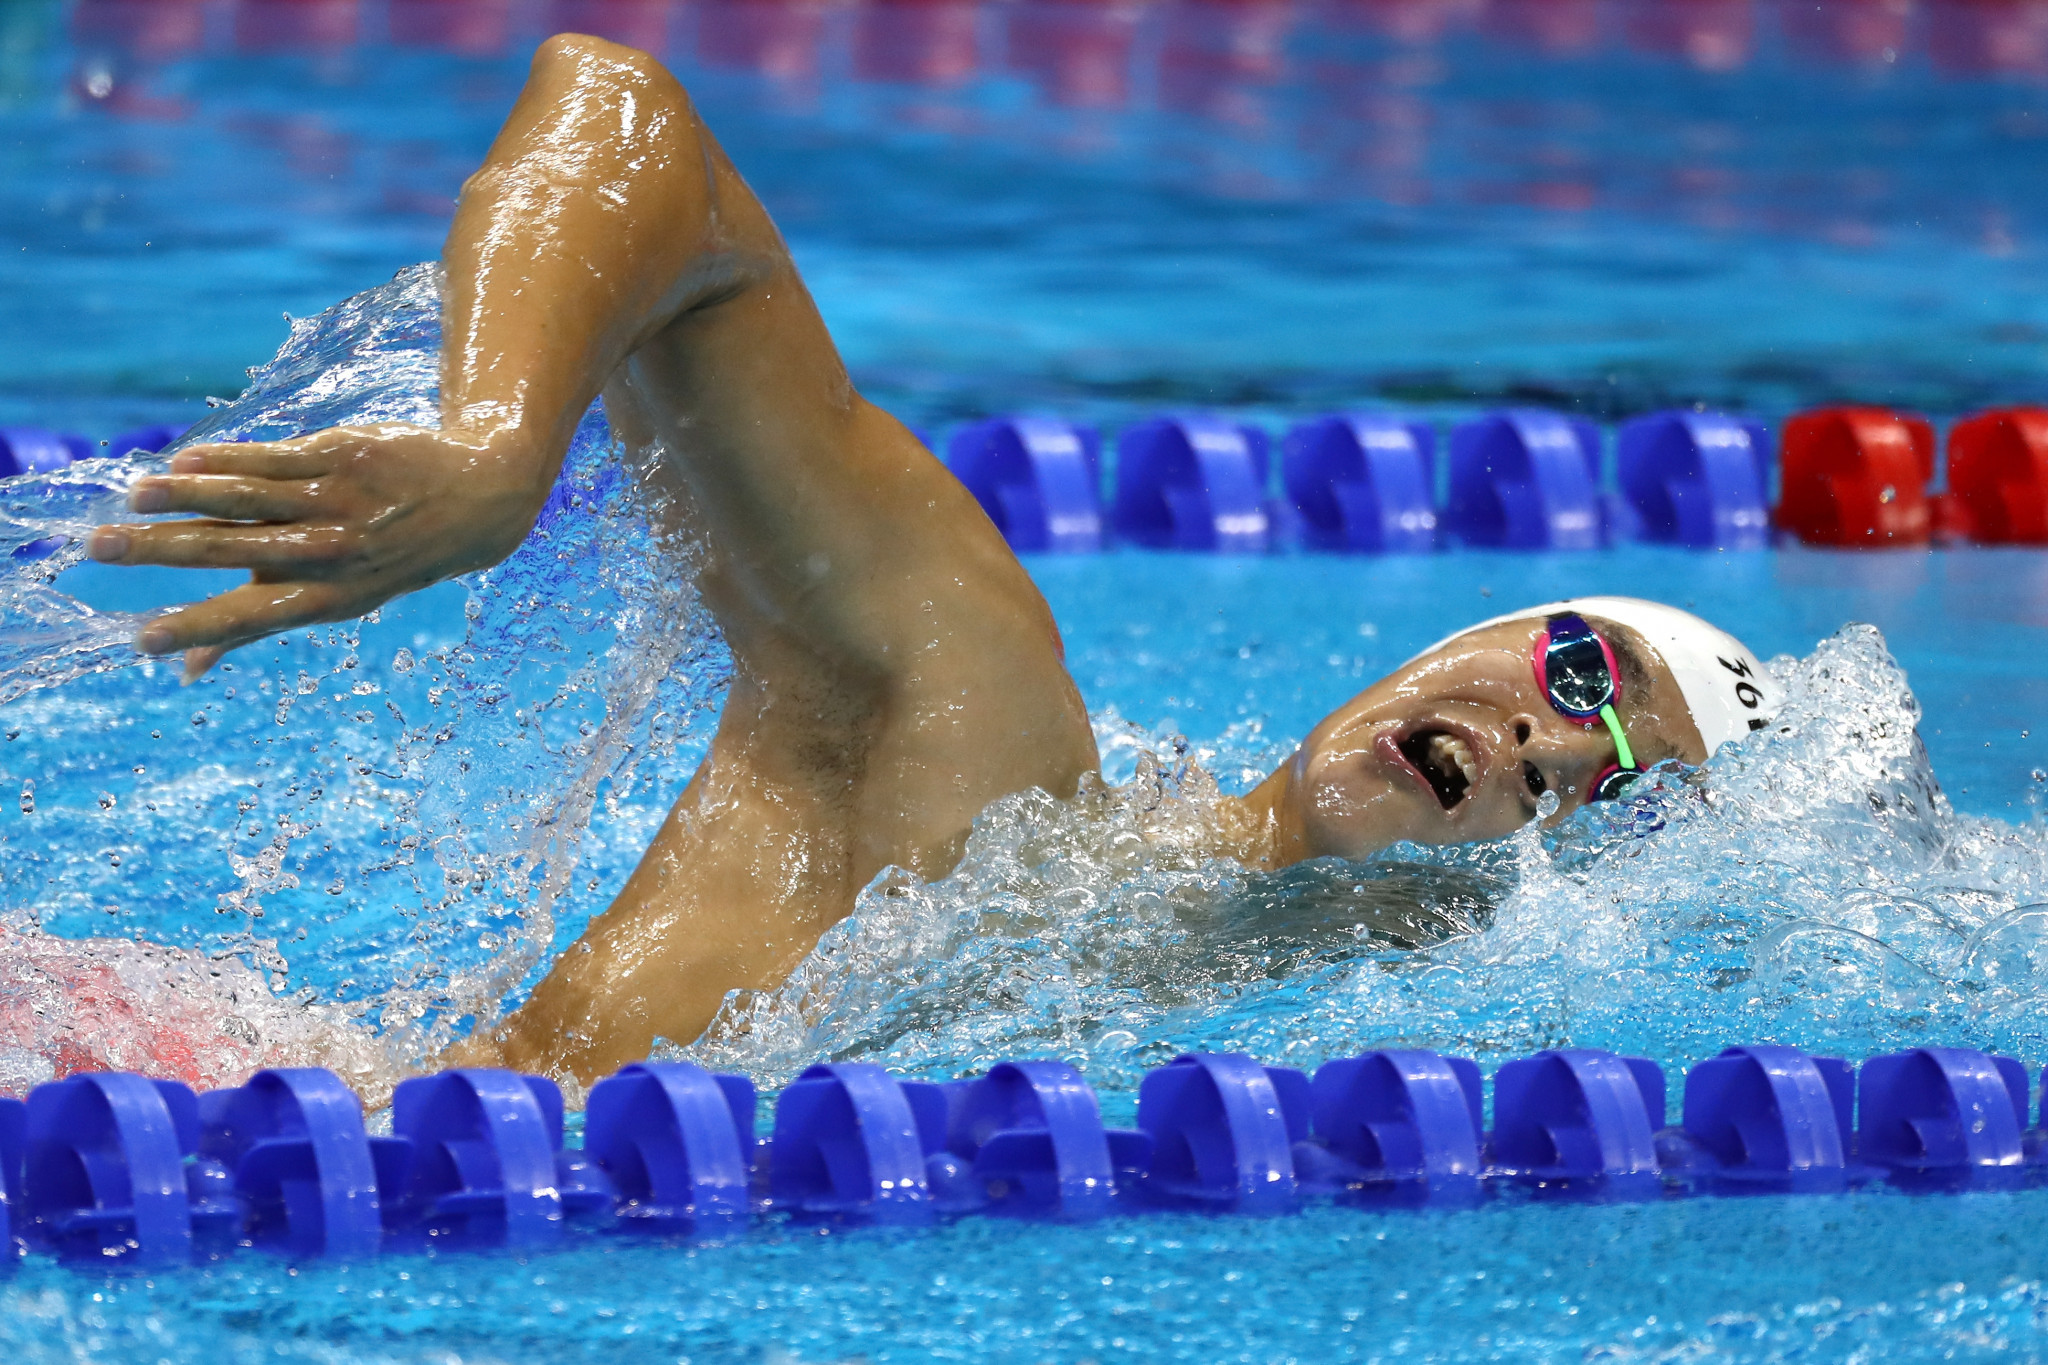 China's Sun Yang has been welcomed back into the sport after serving a secretive three-month doping ban ©Getty Images